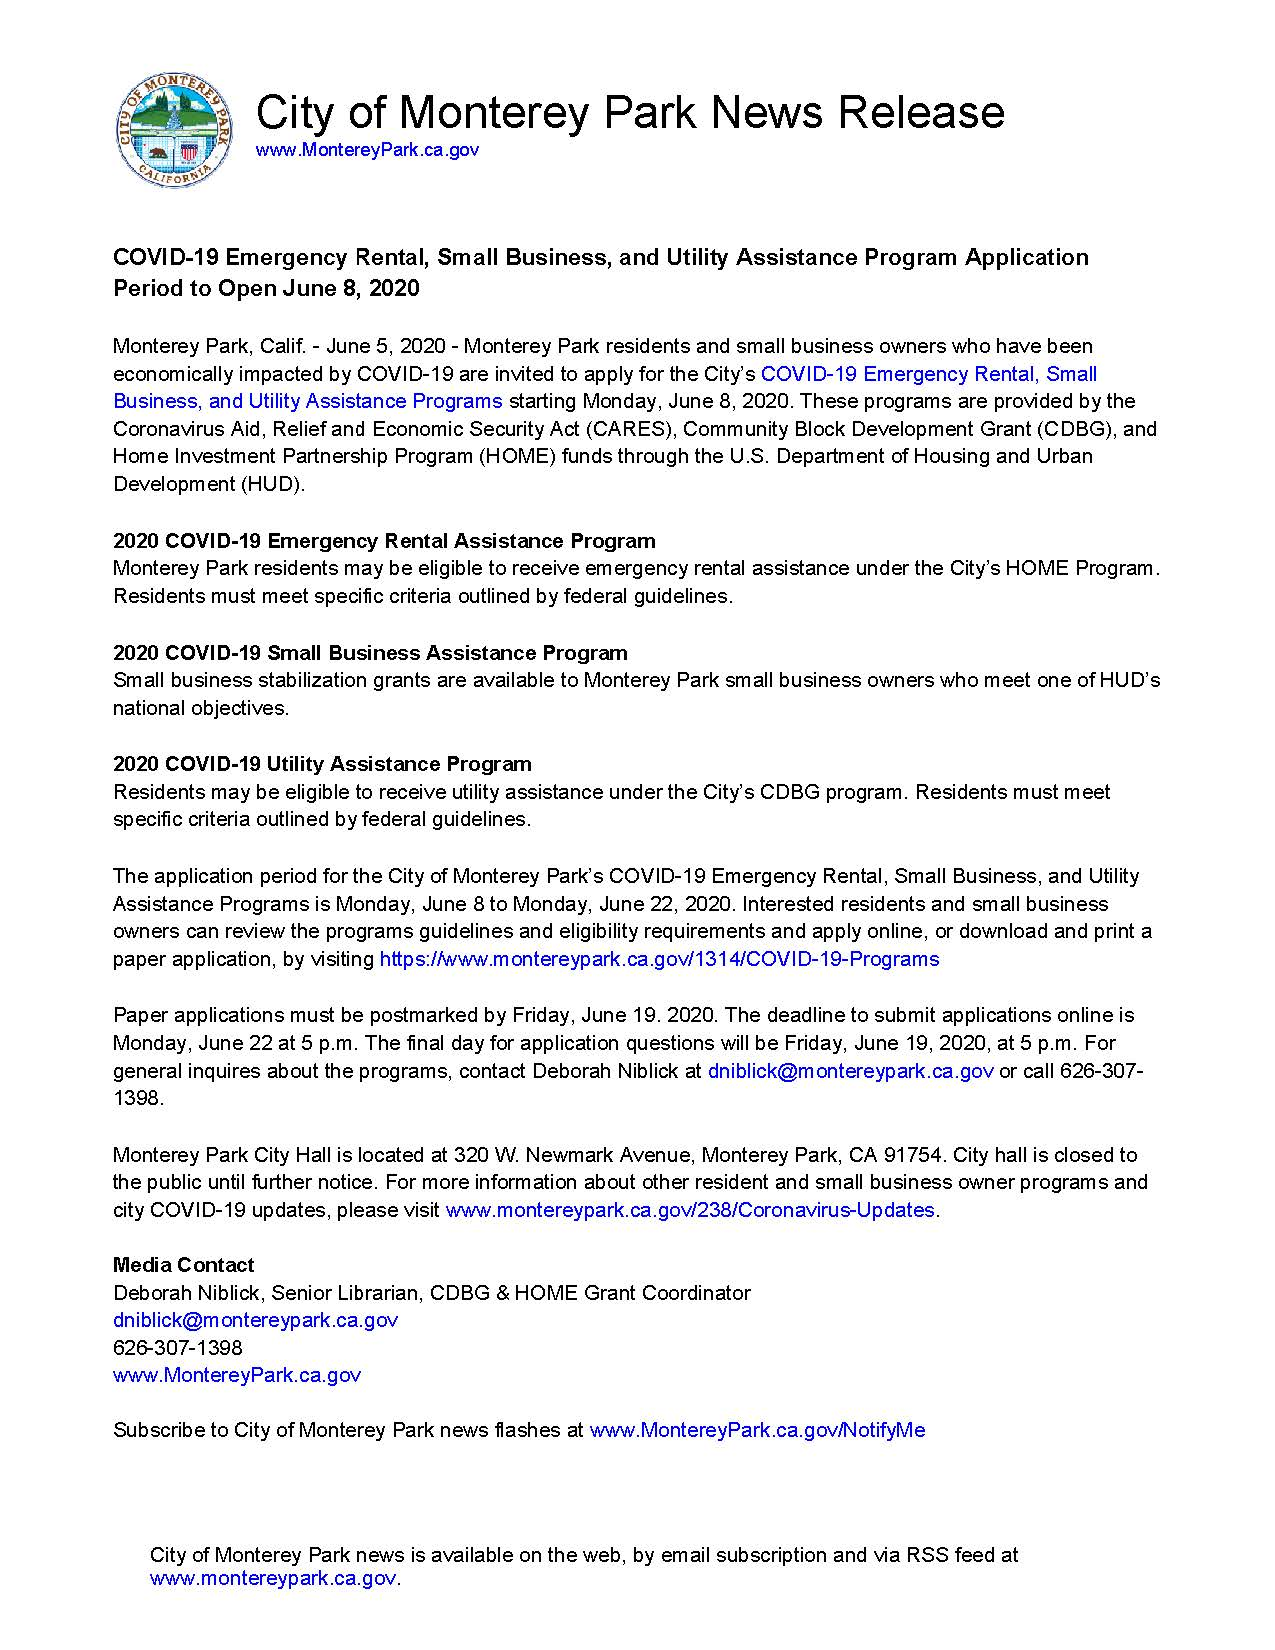 MPK News Release-COVID-19 Emergency Rental Small Business and Utility Assistance Program Application